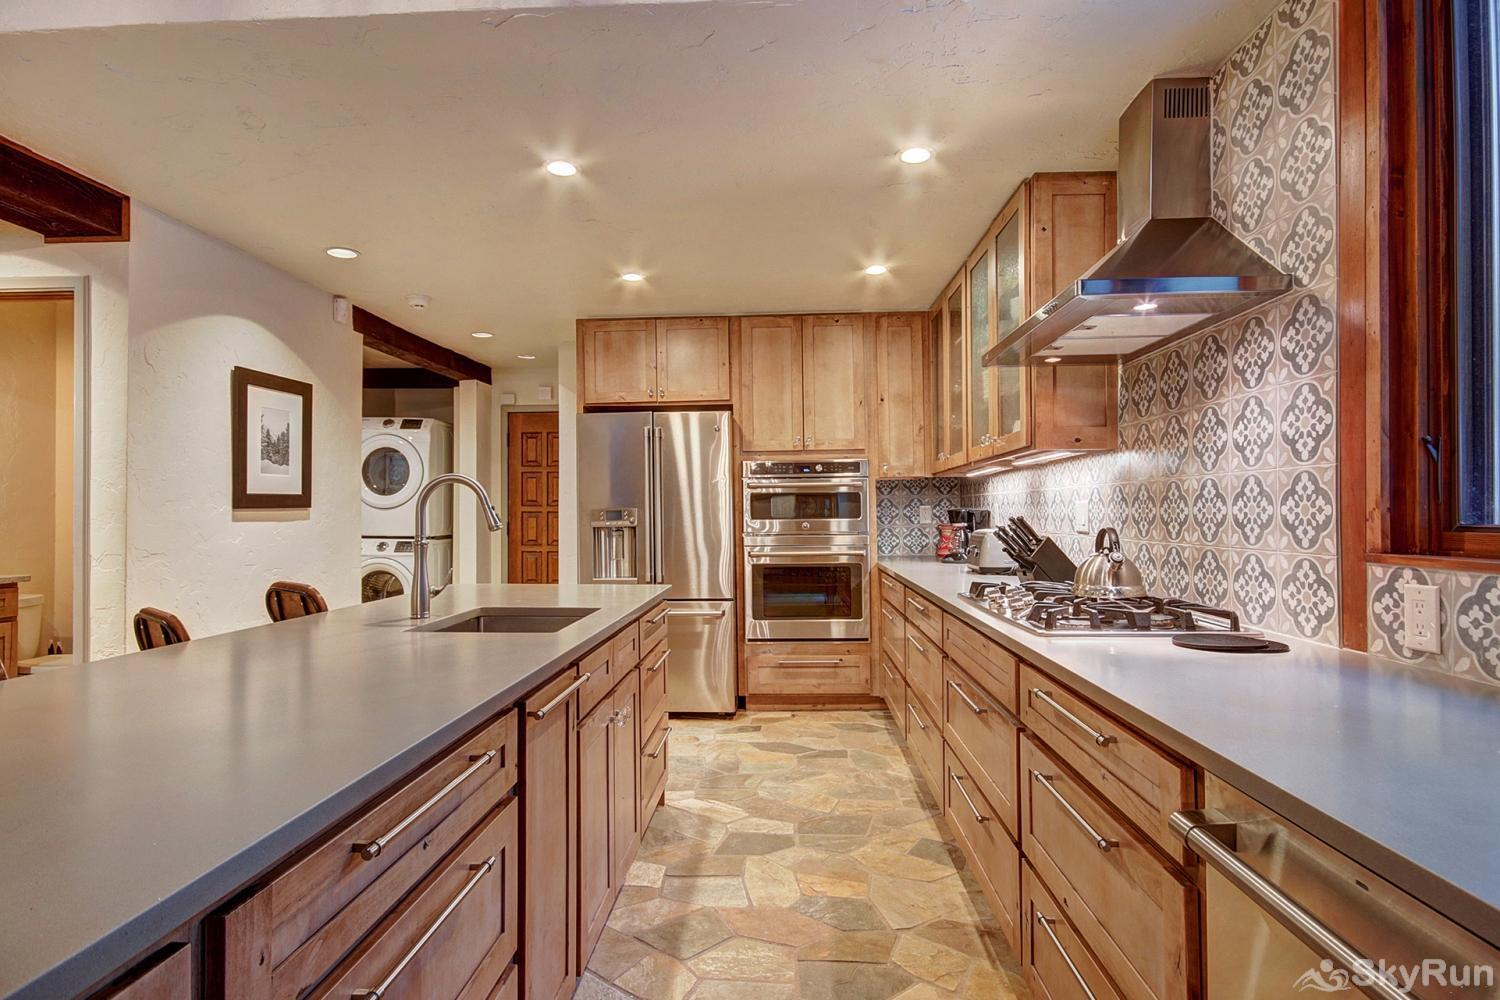 Creekside Chateau Fully equipped kitchen with modern stainless steel appliances